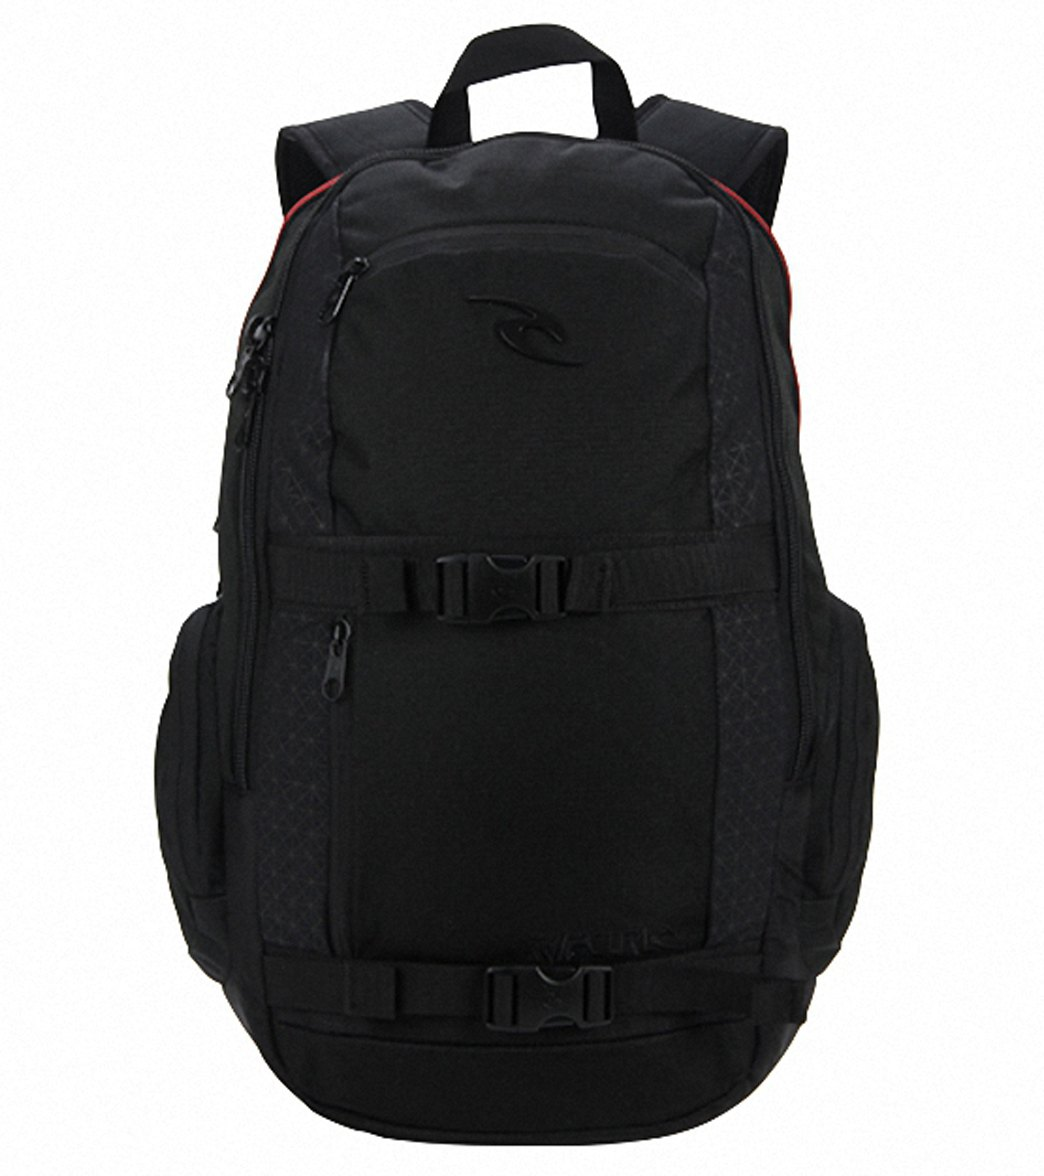 6488bfe9d0 Rip Curl Men s Cortez Wet Dry Surf Backpack at SwimOutlet.com - Free ...